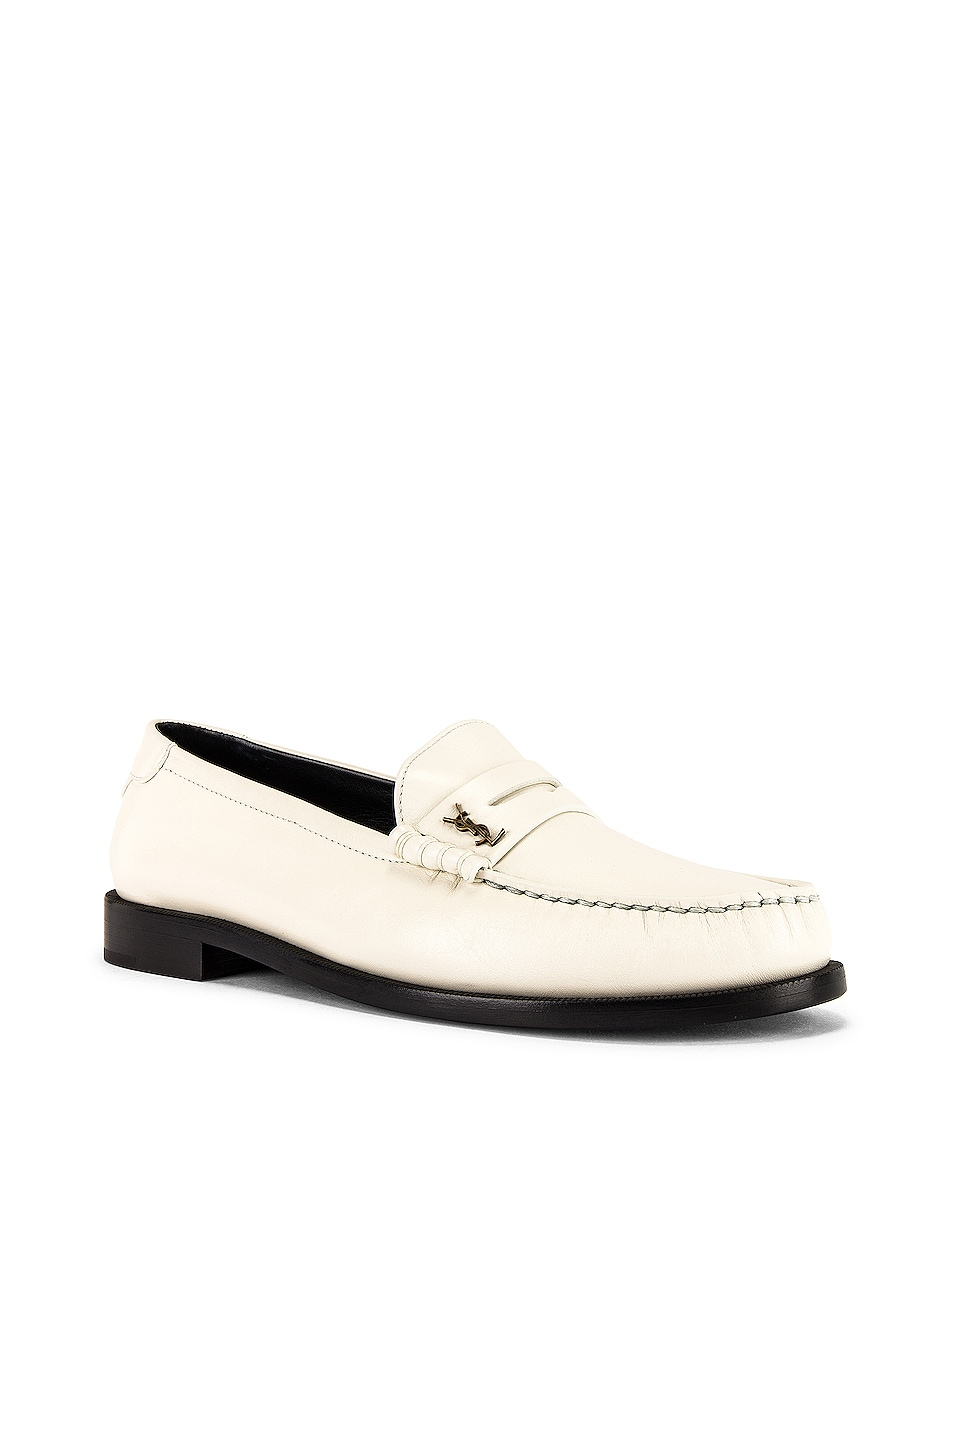 Image 1 of Saint Laurent Twenty 15 YSL Loafer in Pearl